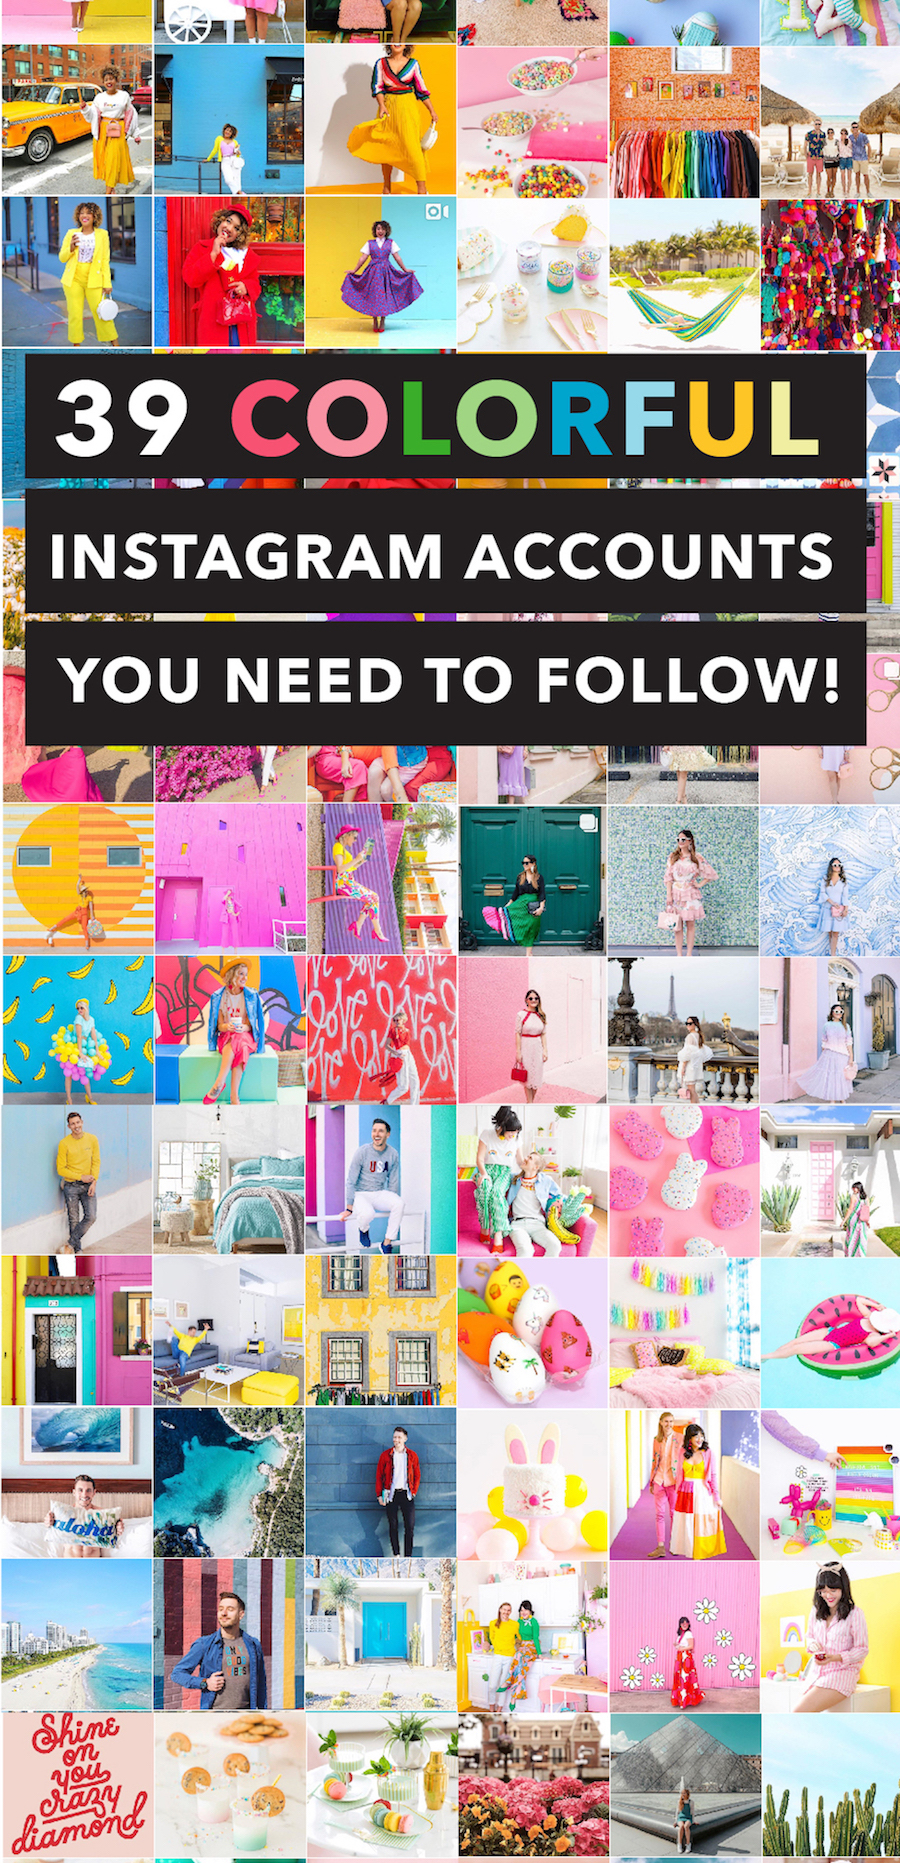 The 39 Colorful Instagram Accounts You Need to Follow Immediately